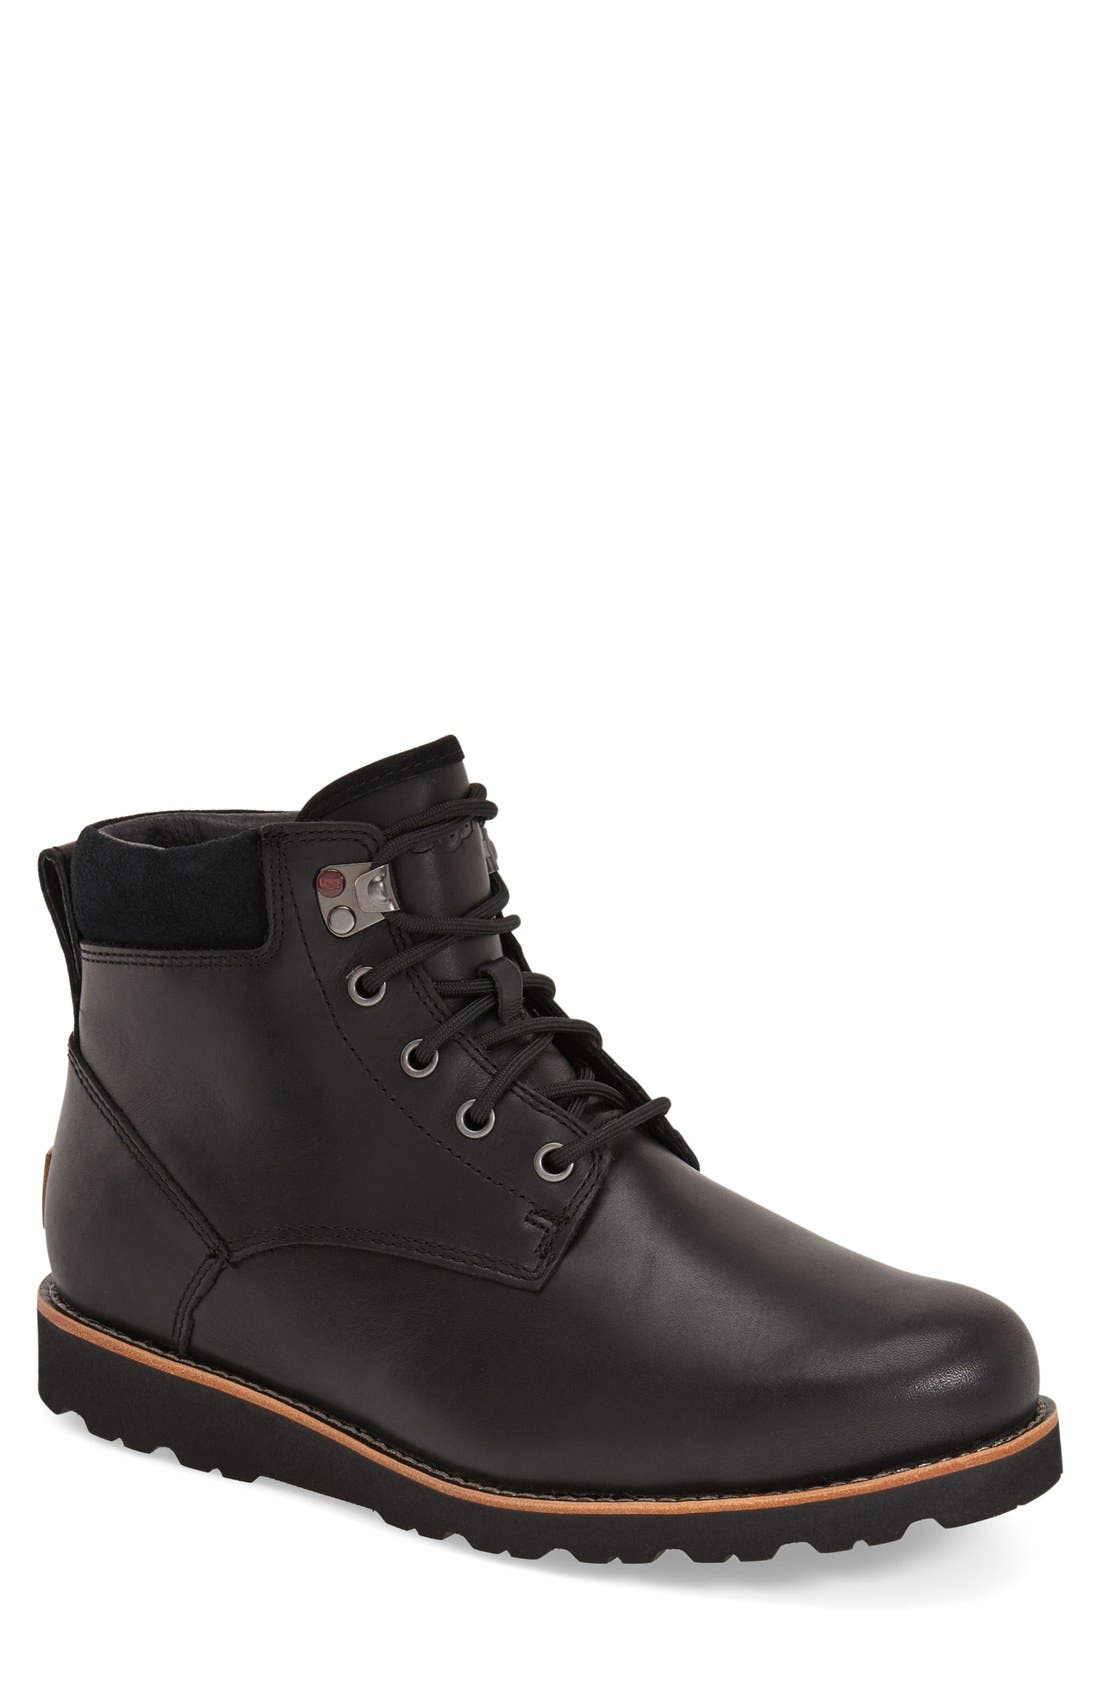 Main Image - UGG® Seton Waterproof Chukka Boot (Men)